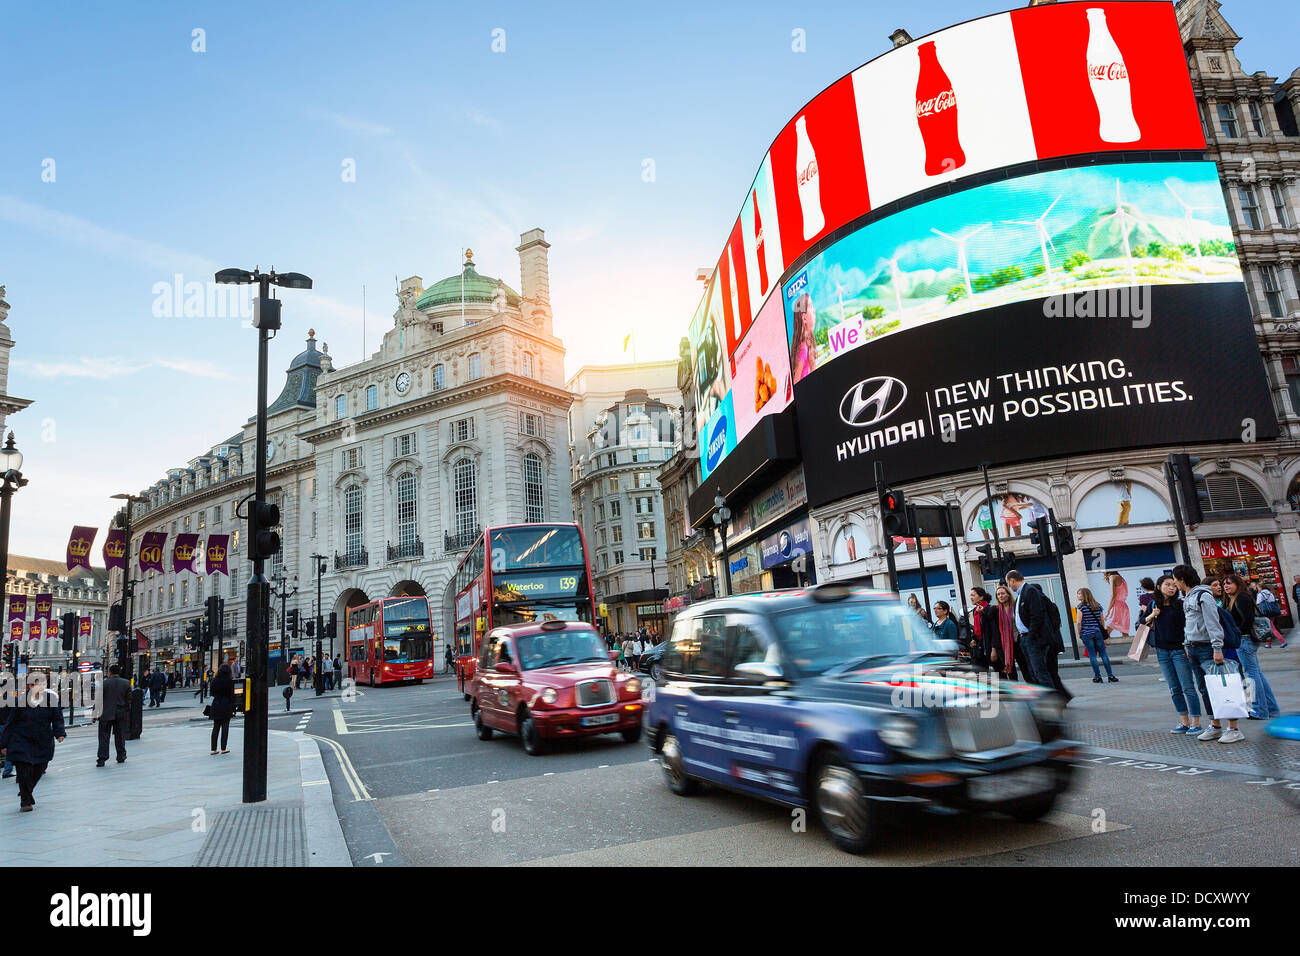 London, Piccadilly Circus - Stock Image